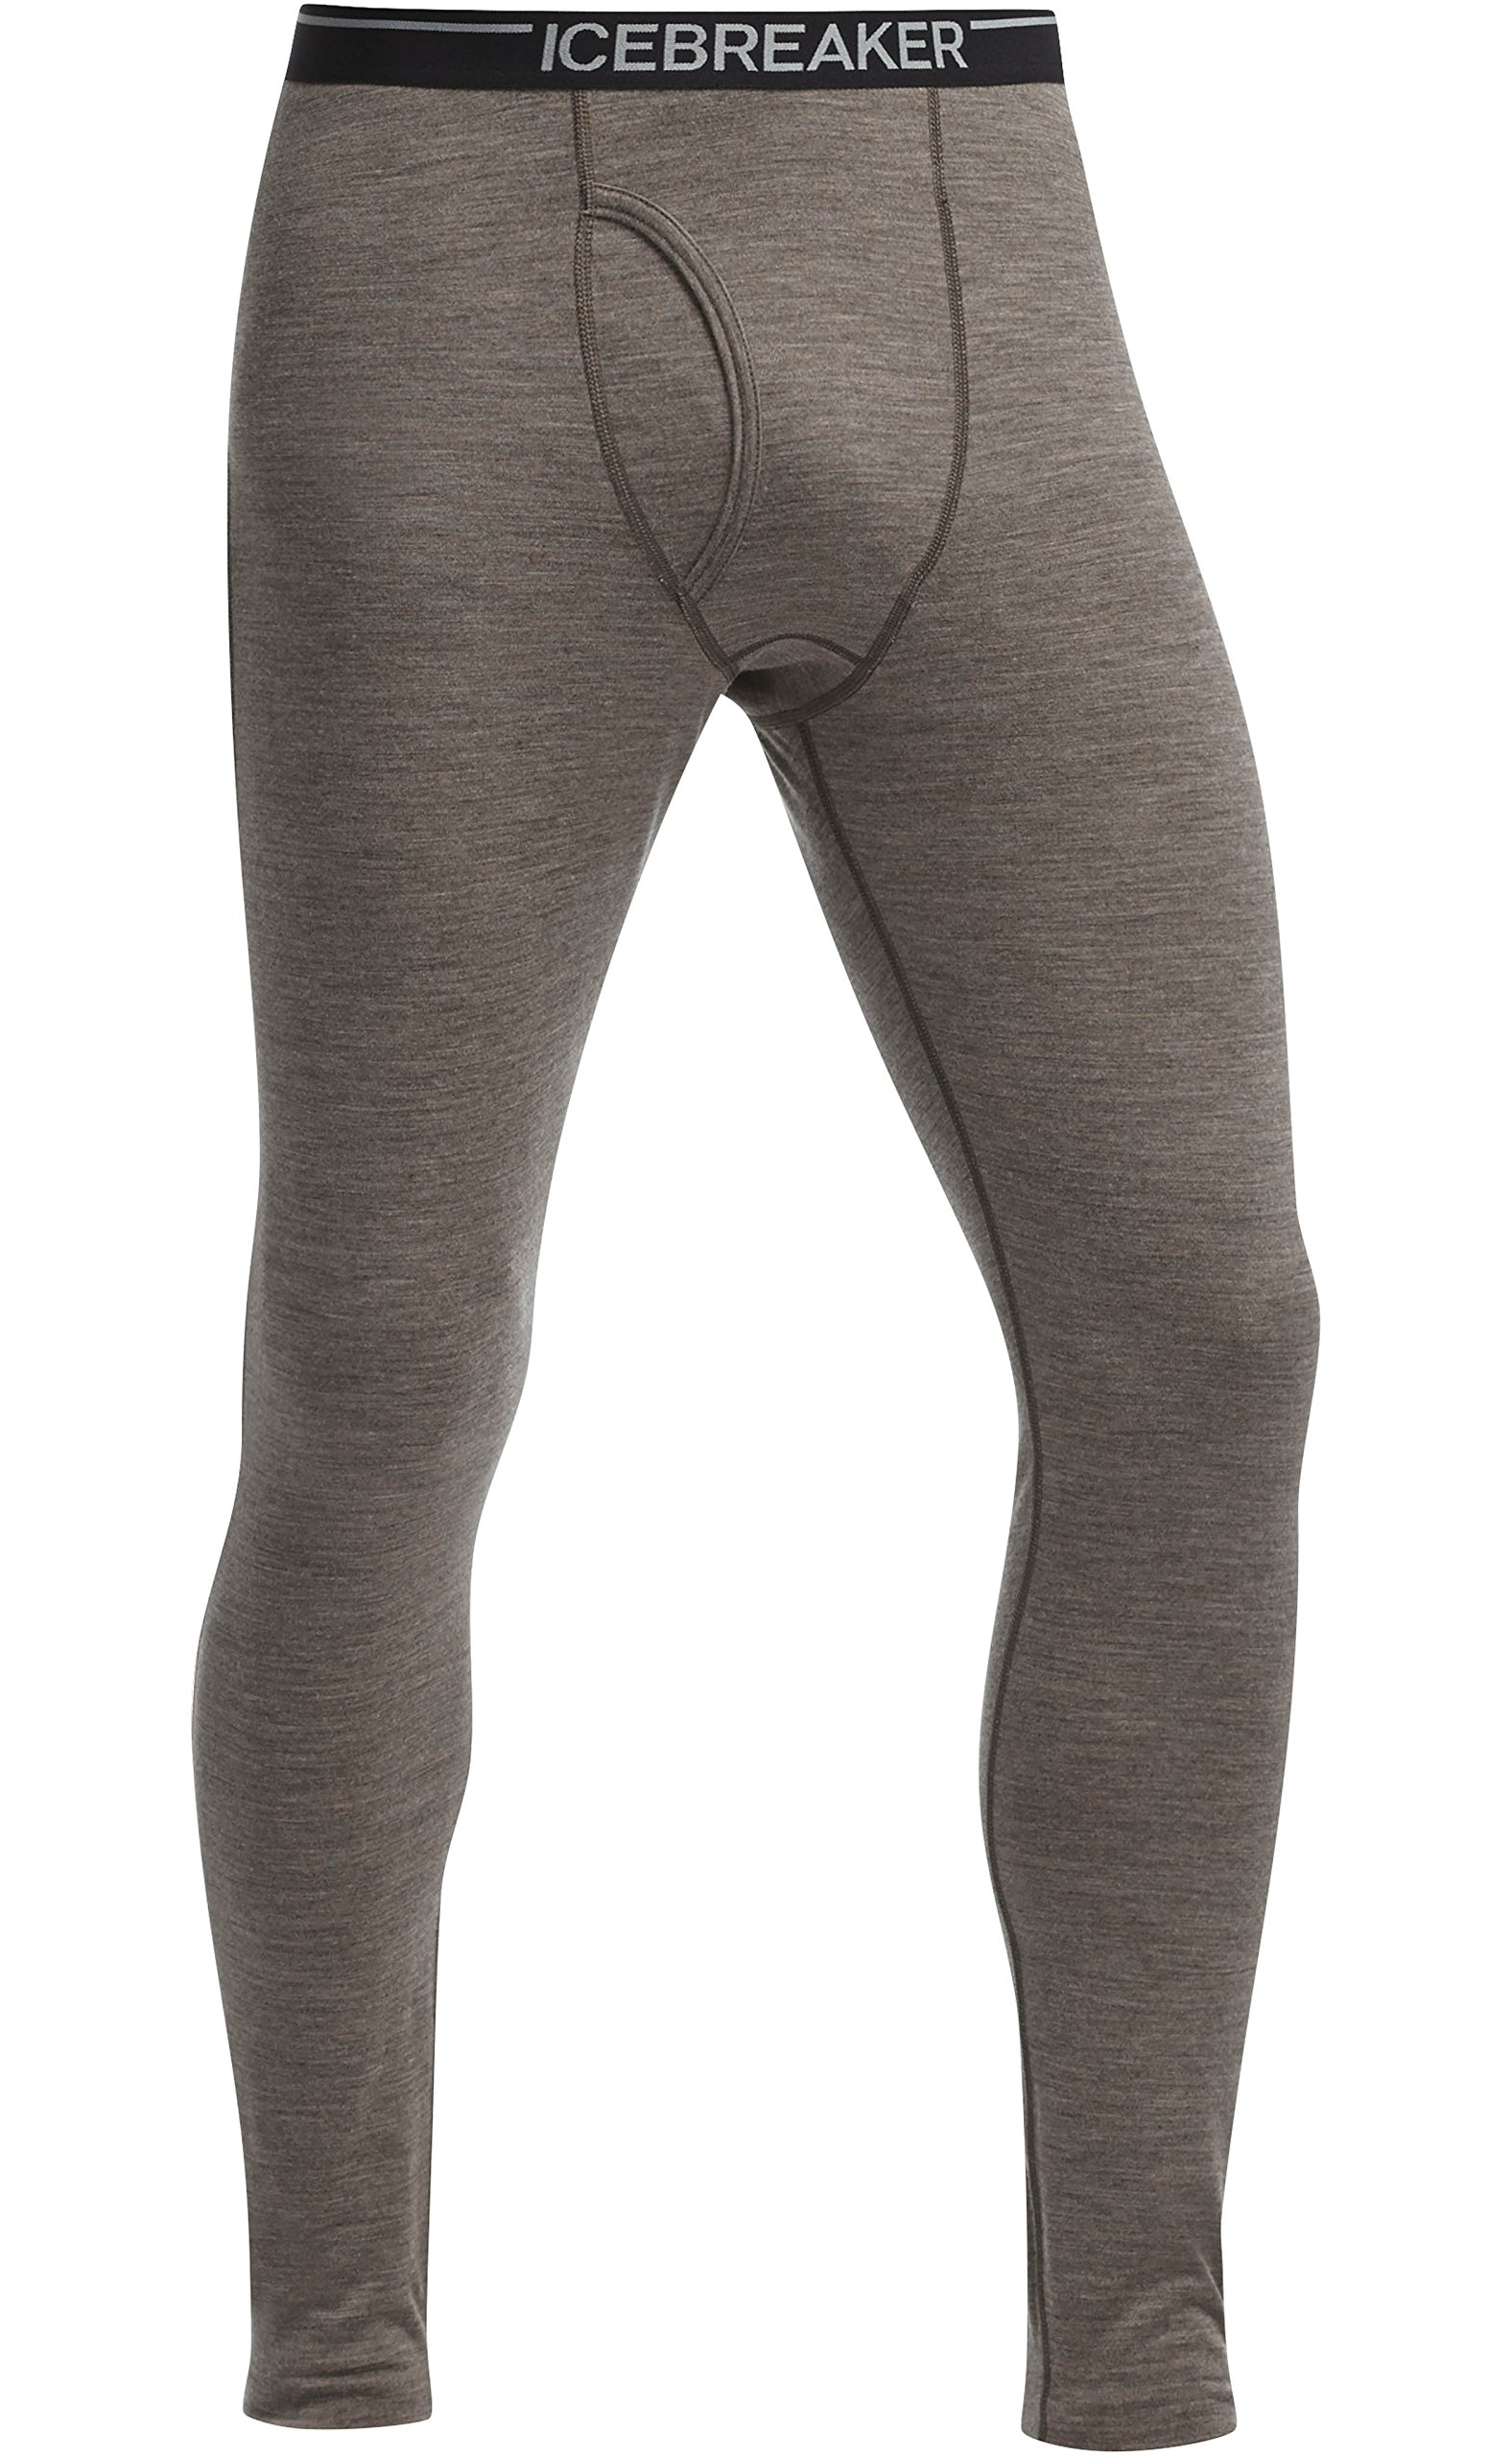 Icebreaker Men's Oasis Leggings with Fly, Trail Heather, X-Large